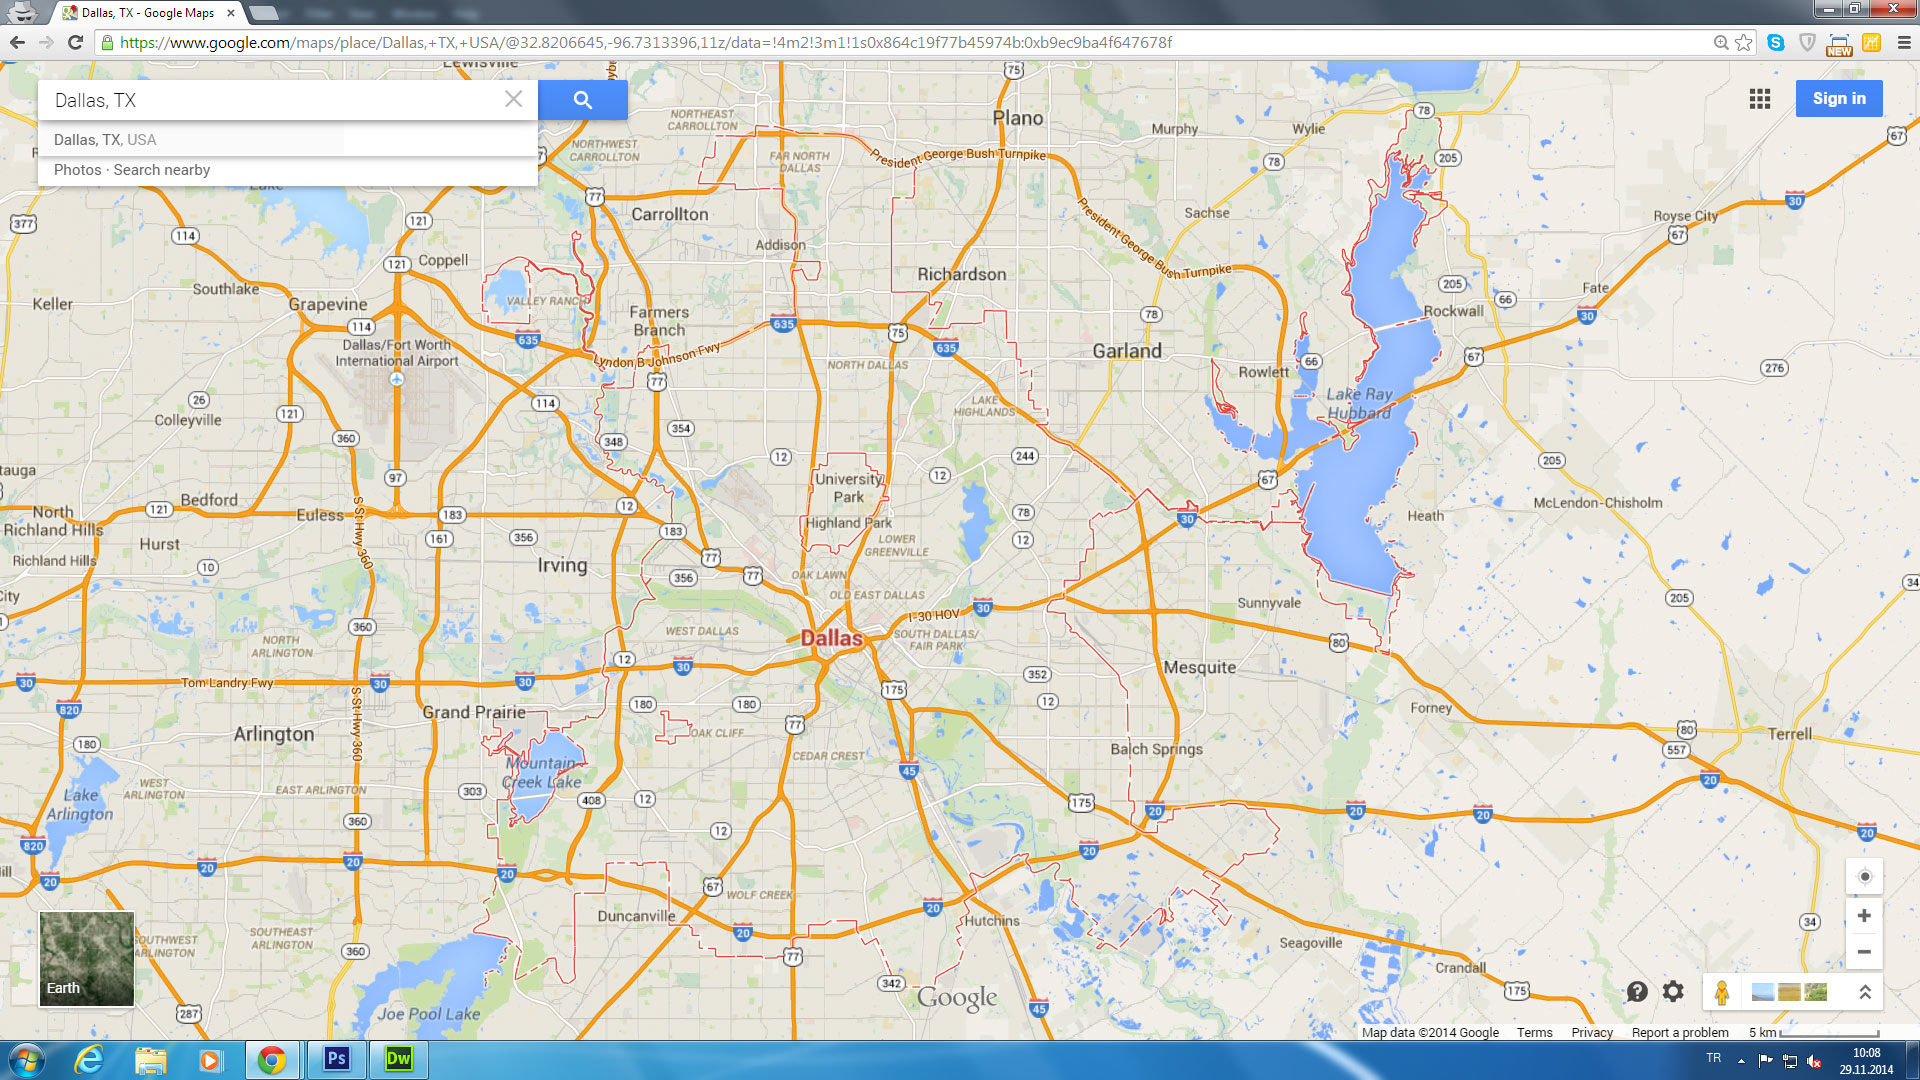 Dallas Texas Google Maps And Travel Information | Download Free - Google Maps Dallas Texas Usa